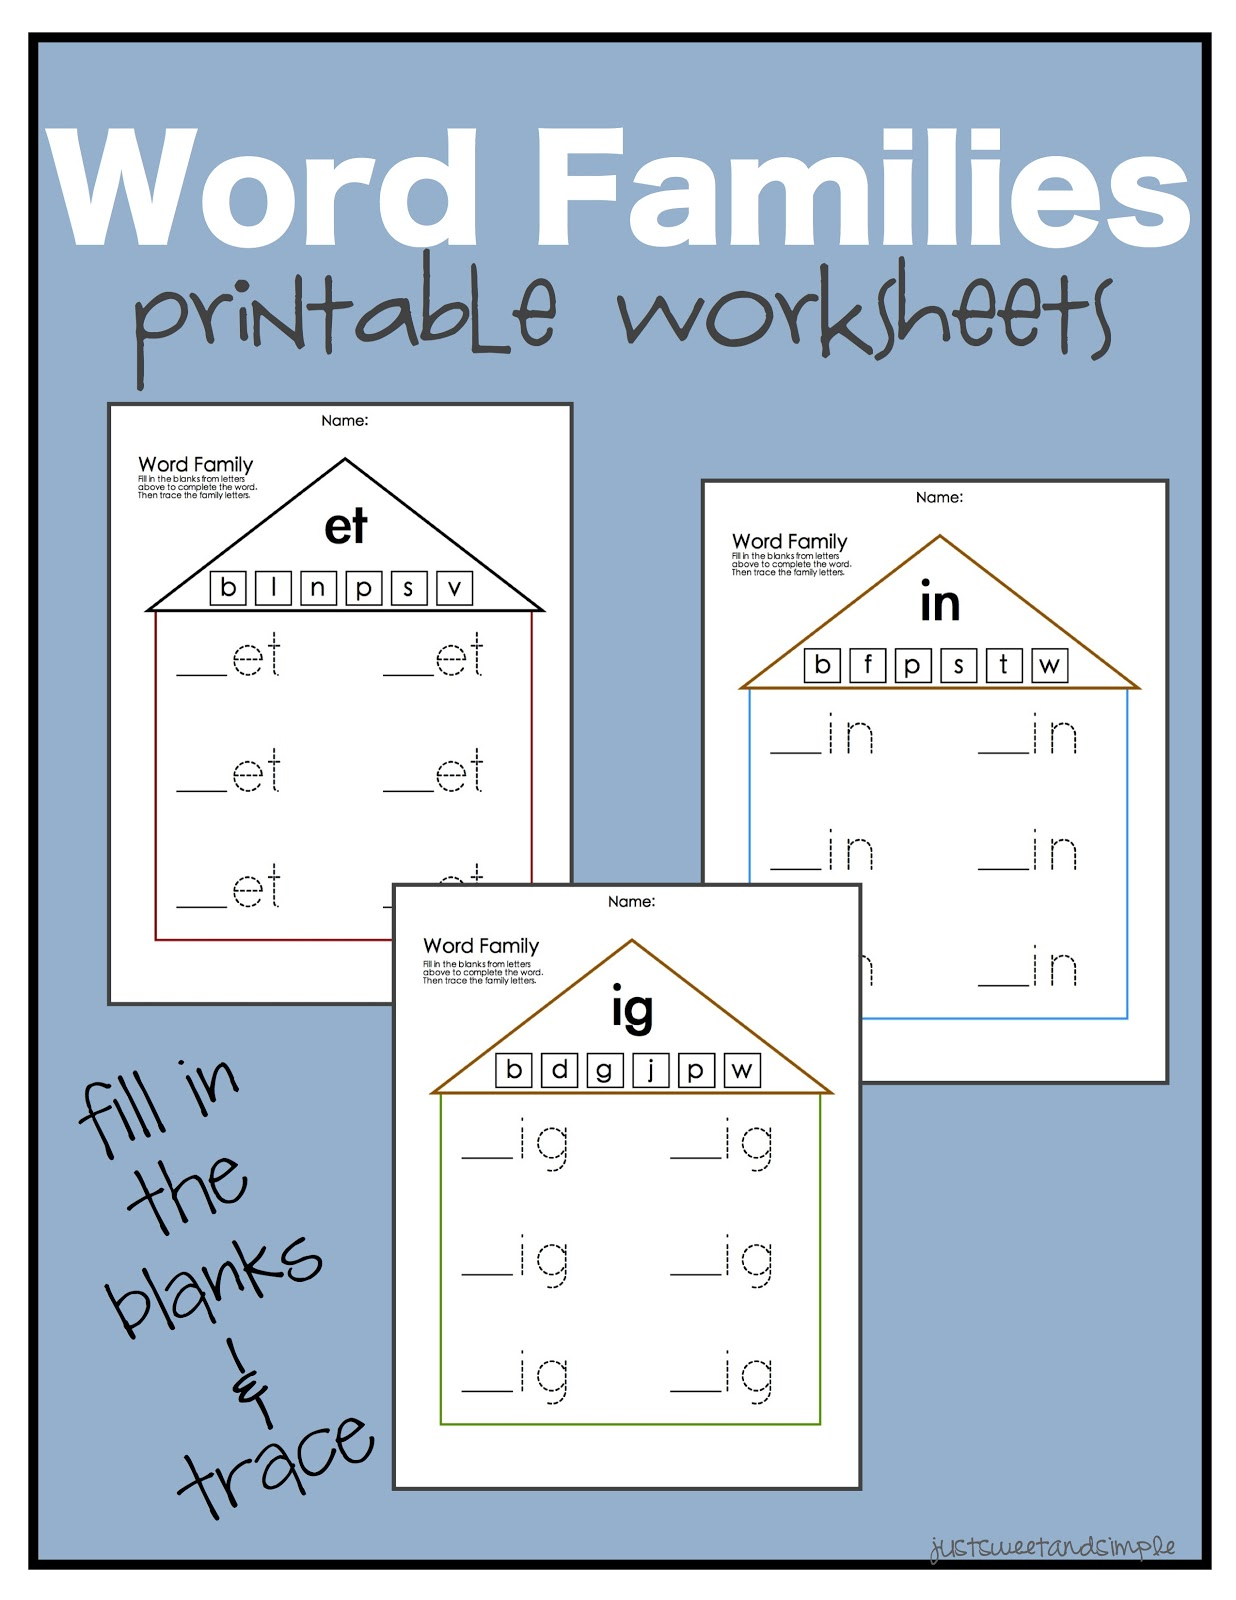 just Sweet and Simple Preschool Practice Word Family Worksheets